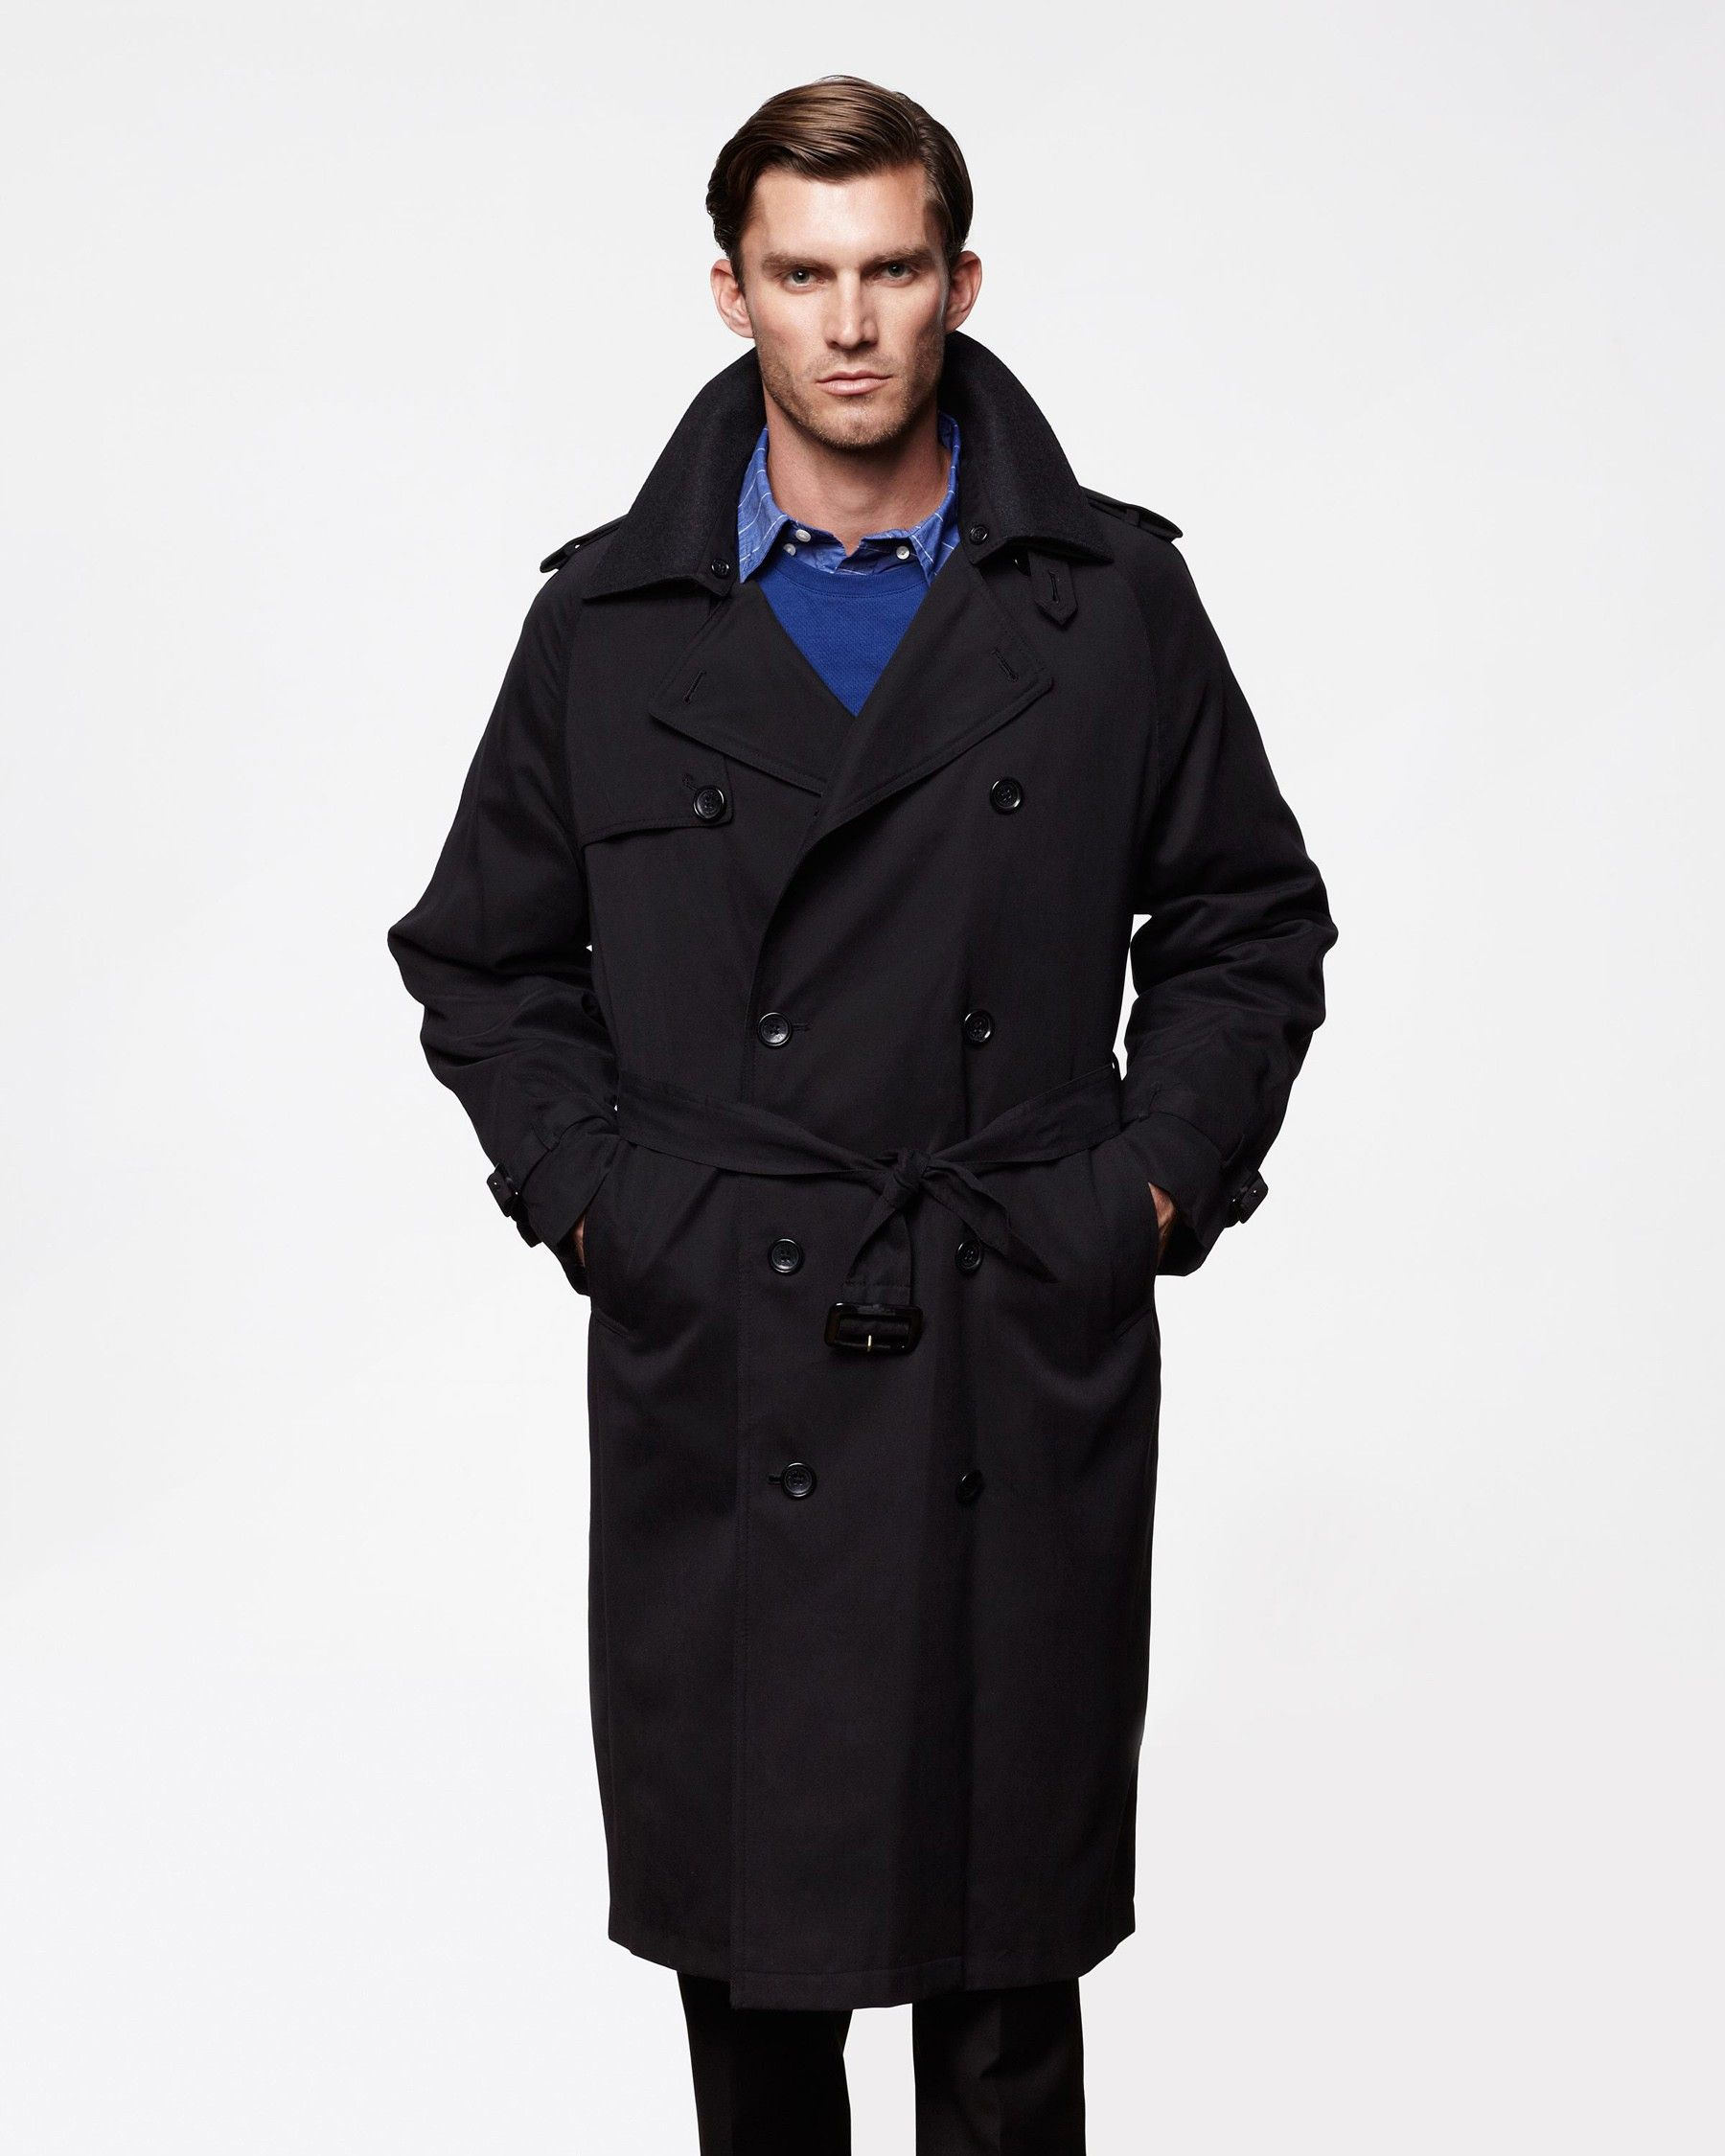 Raleigh Long Trench Coat For Men Double Breasted In 2020 Trench Coat Men Long Trench Coat Trench Coat